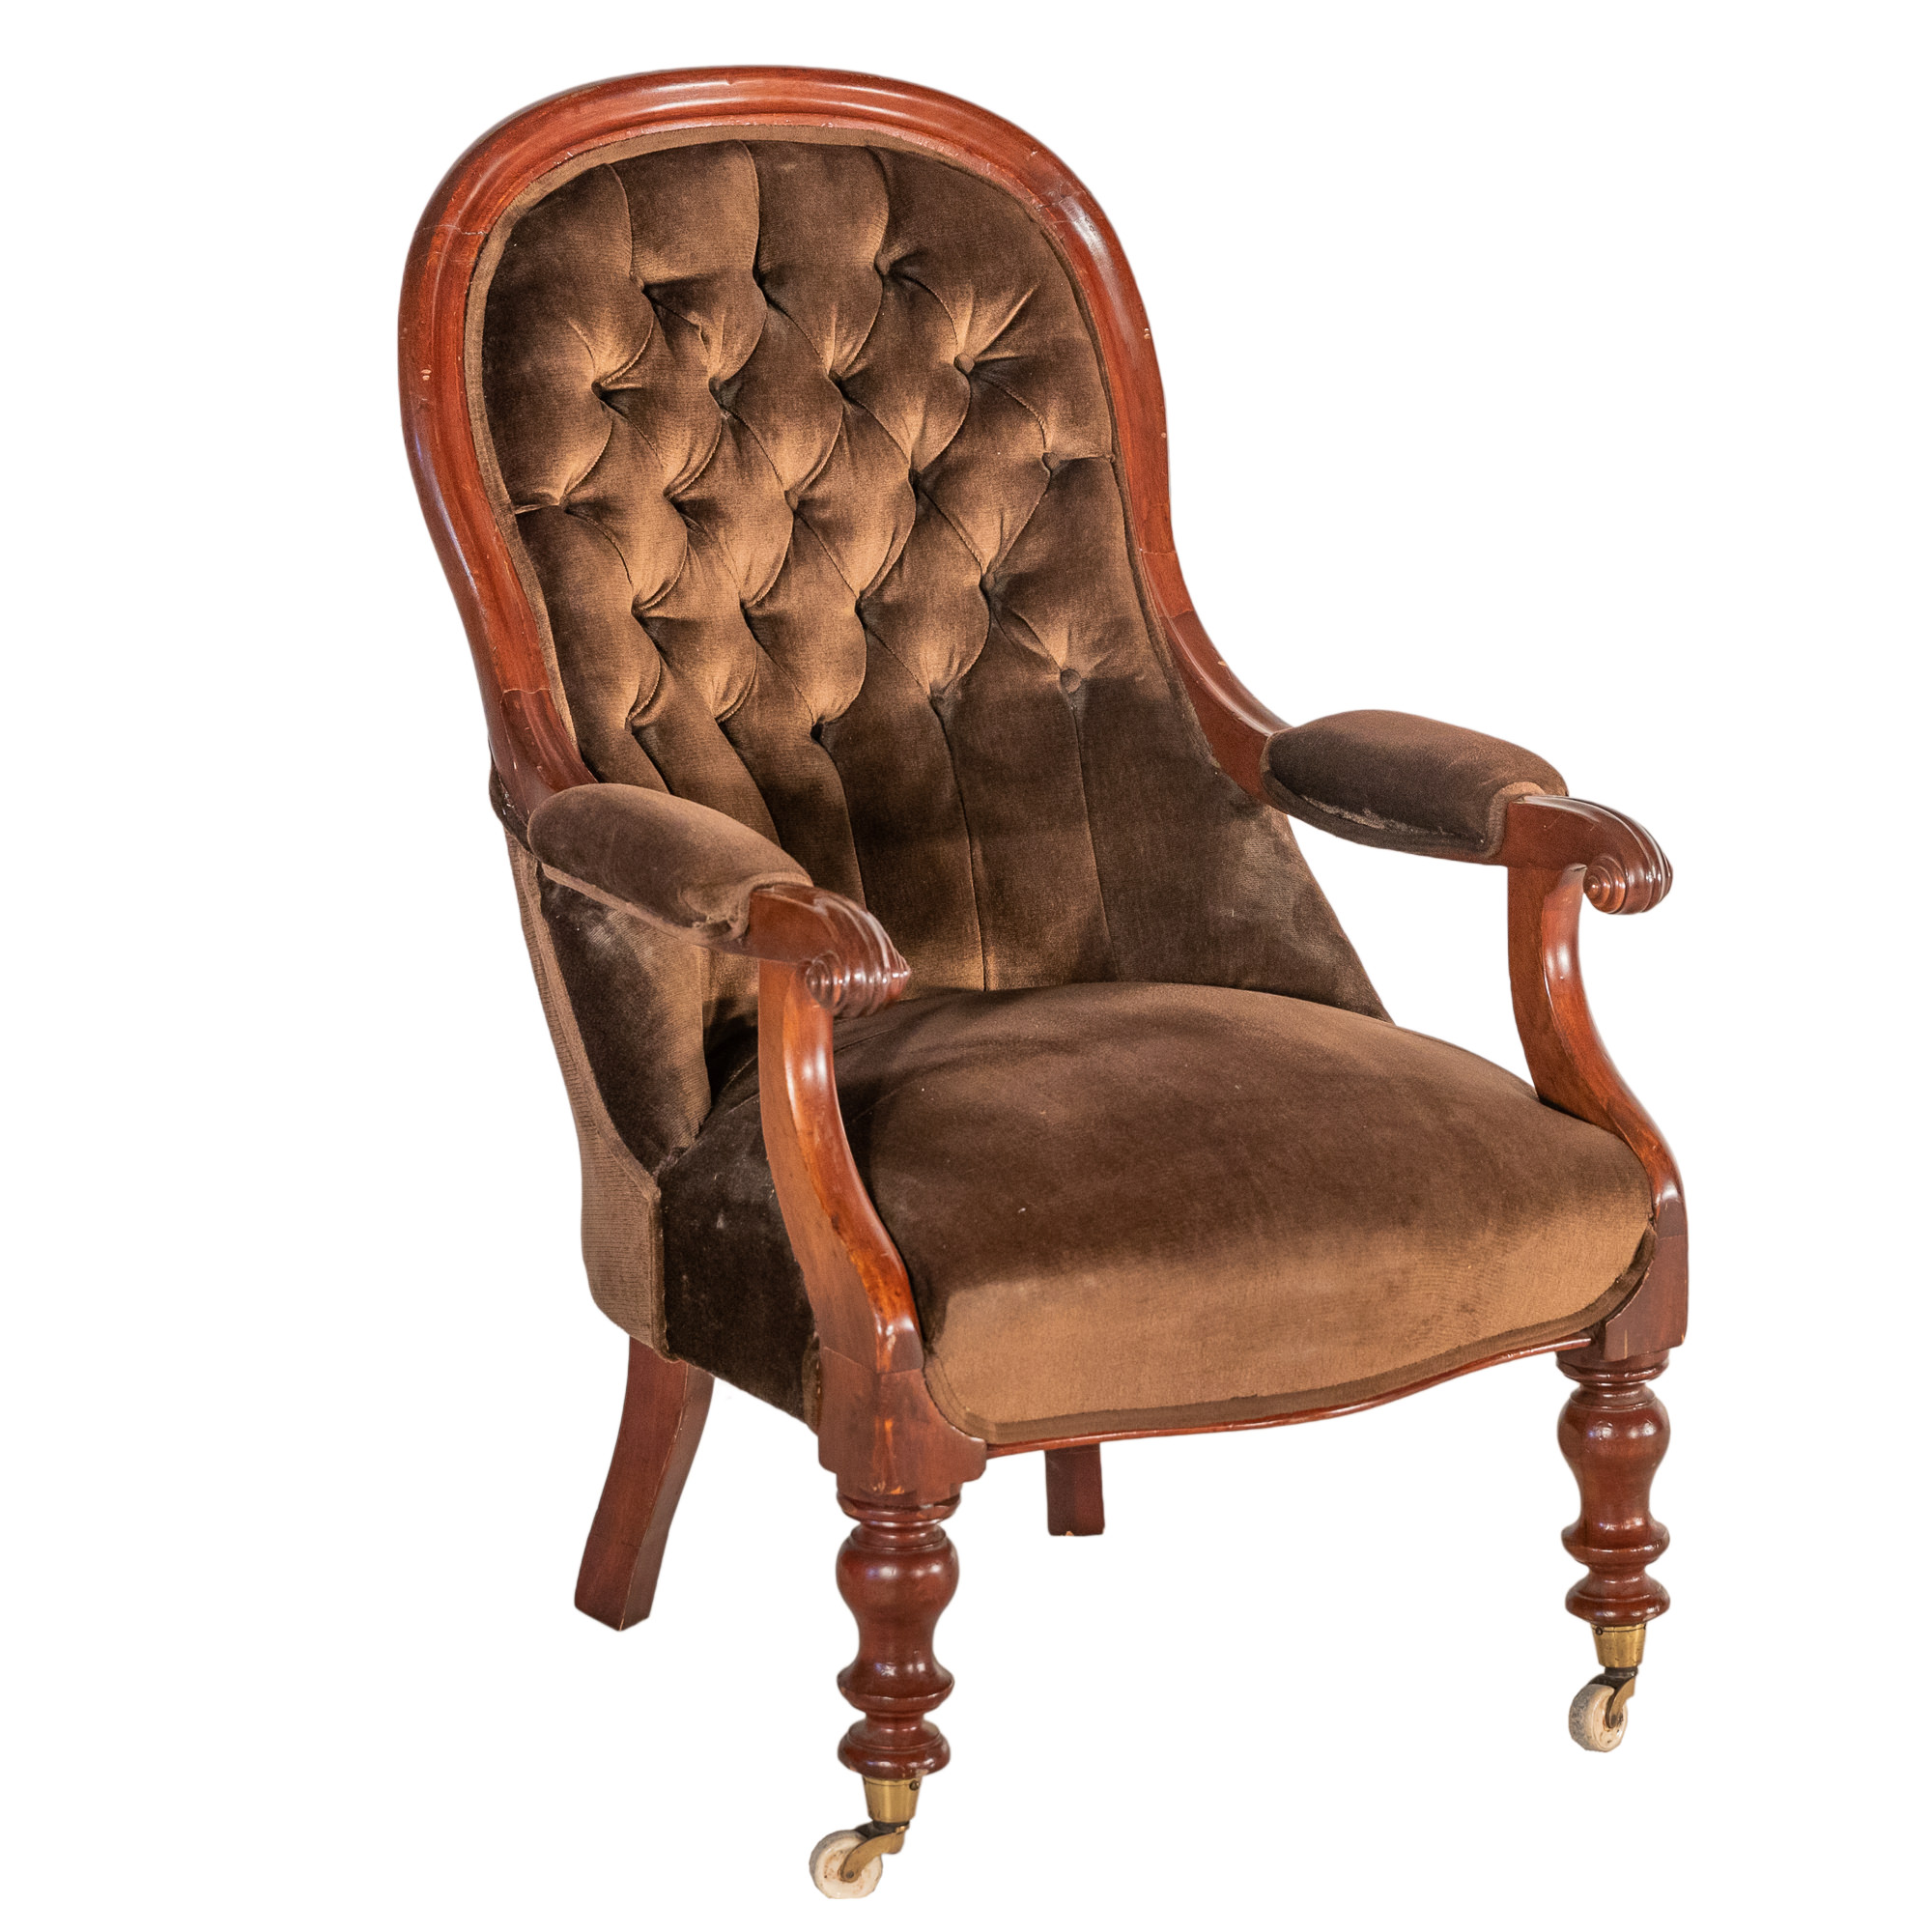 'Victorian Mahogany Salon Chair with Brown Velvet Upholstery Circa 1880'